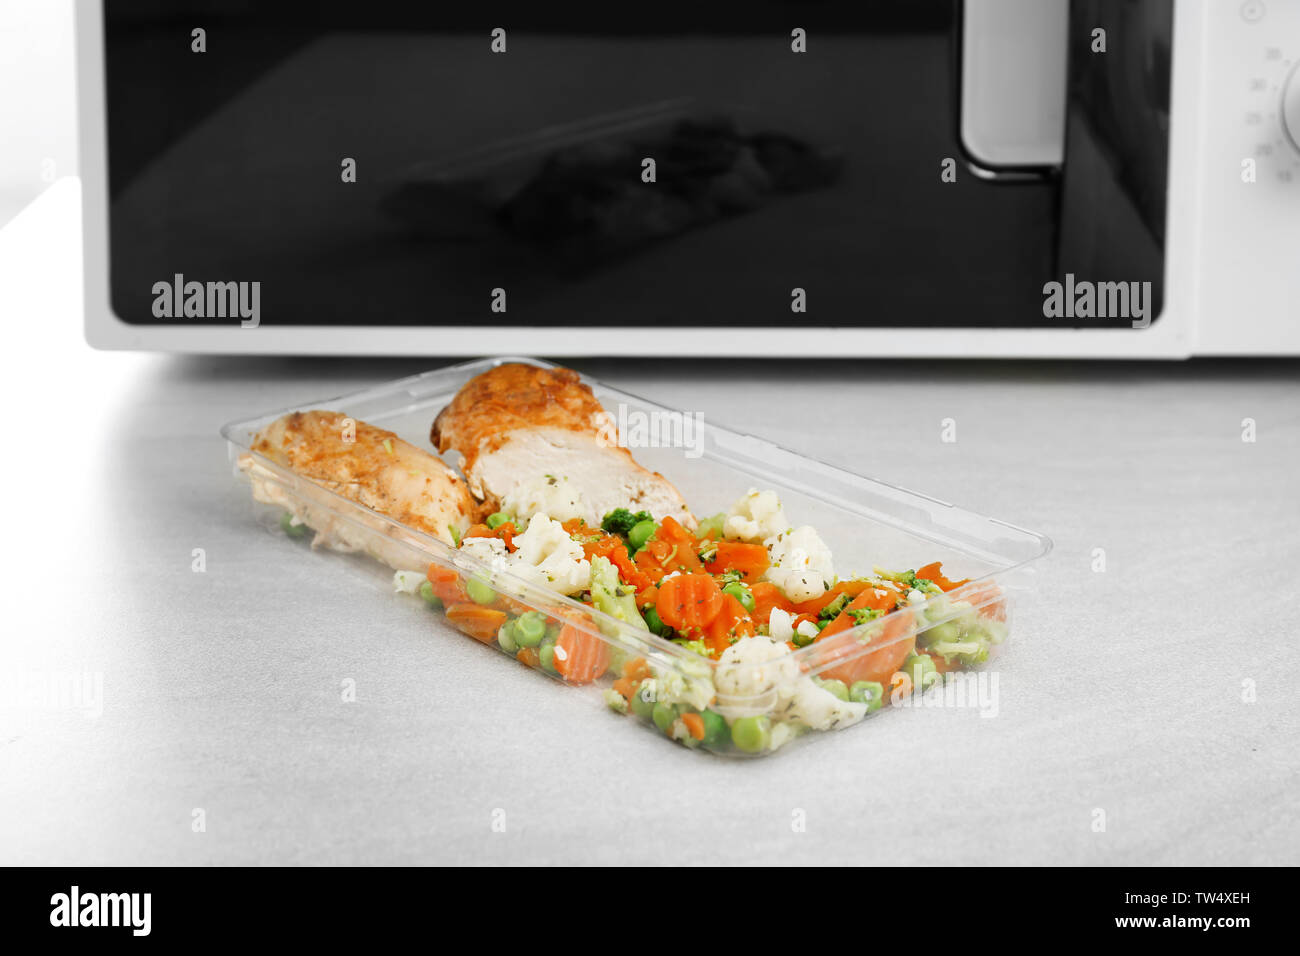 Plastic food container with delicious fried meat and baked vegetables on table - Stock Image